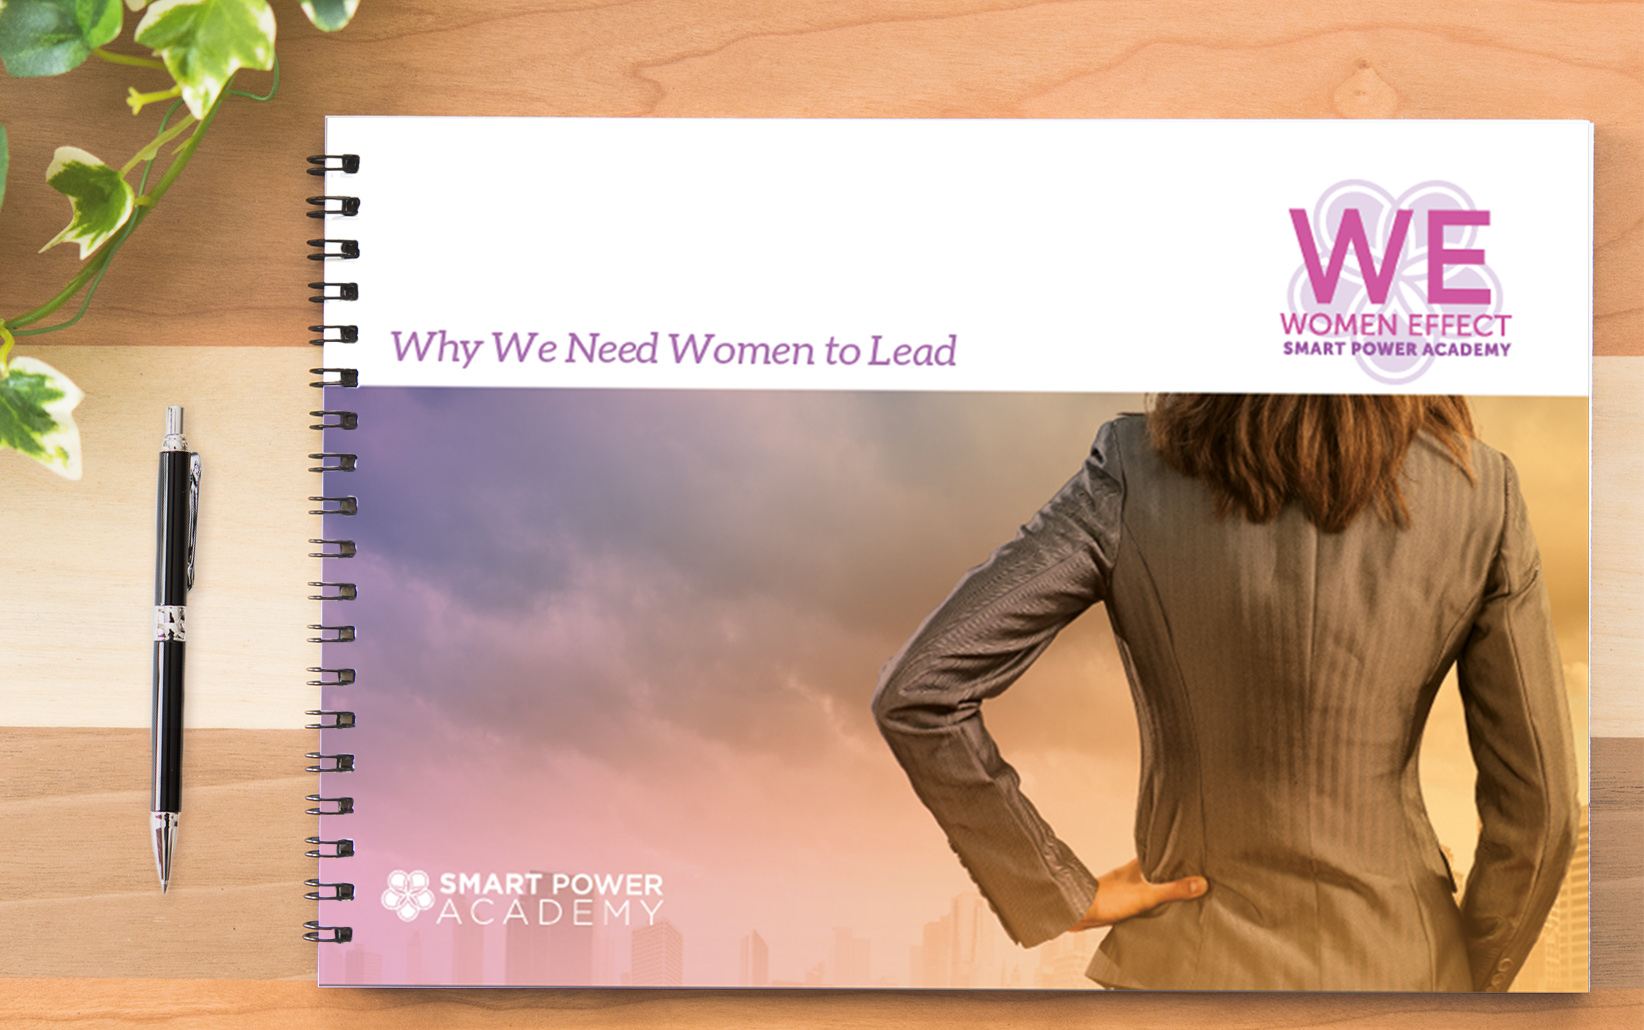 SPA Workbook Cover for Women Effect Conference